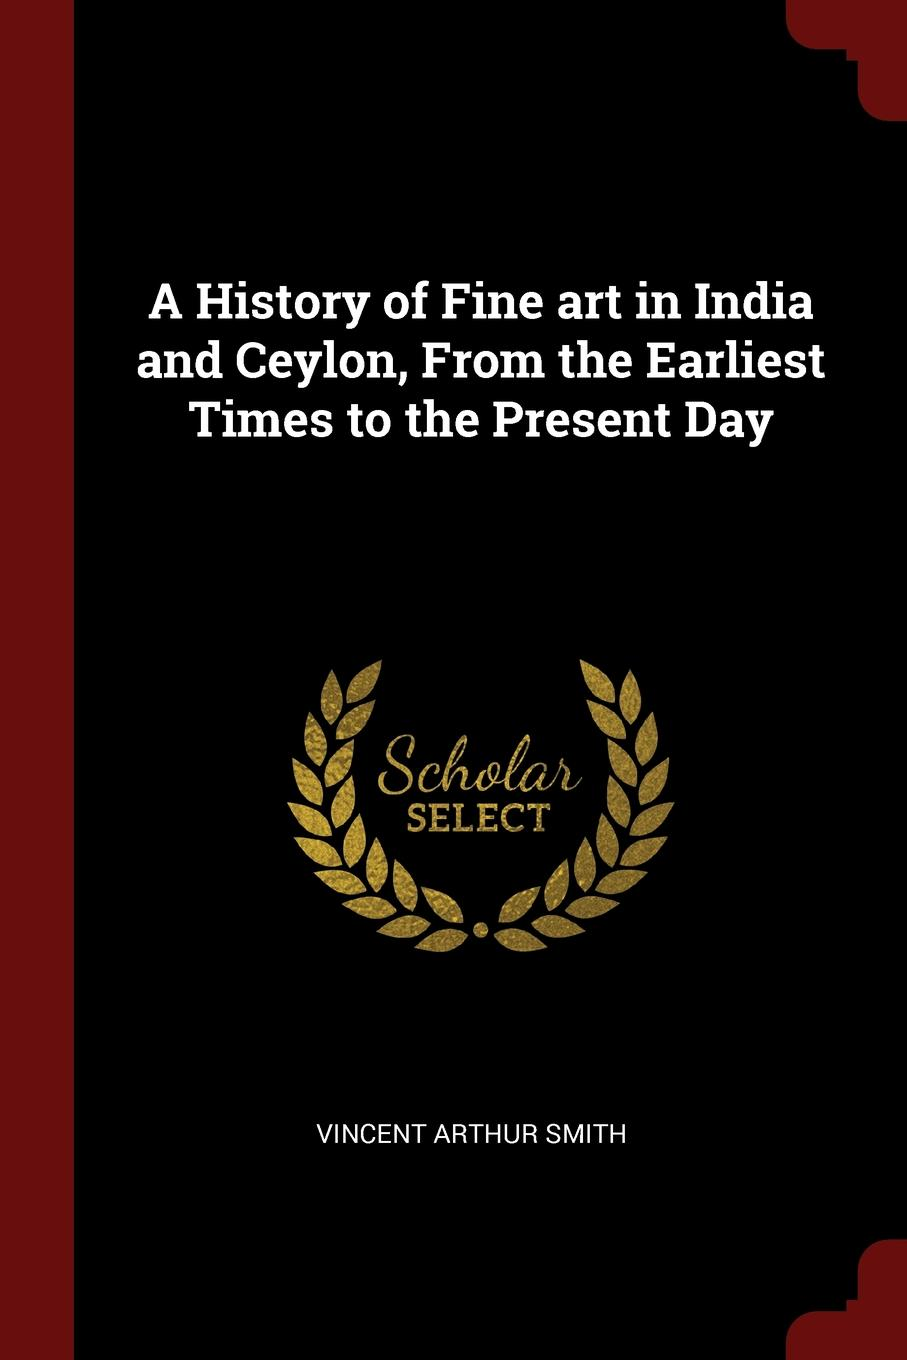 Vincent Arthur Smith A History of Fine art in India and Ceylon, From the Earliest Times to the Present Day vincent arthur smith art of india 1526 1858